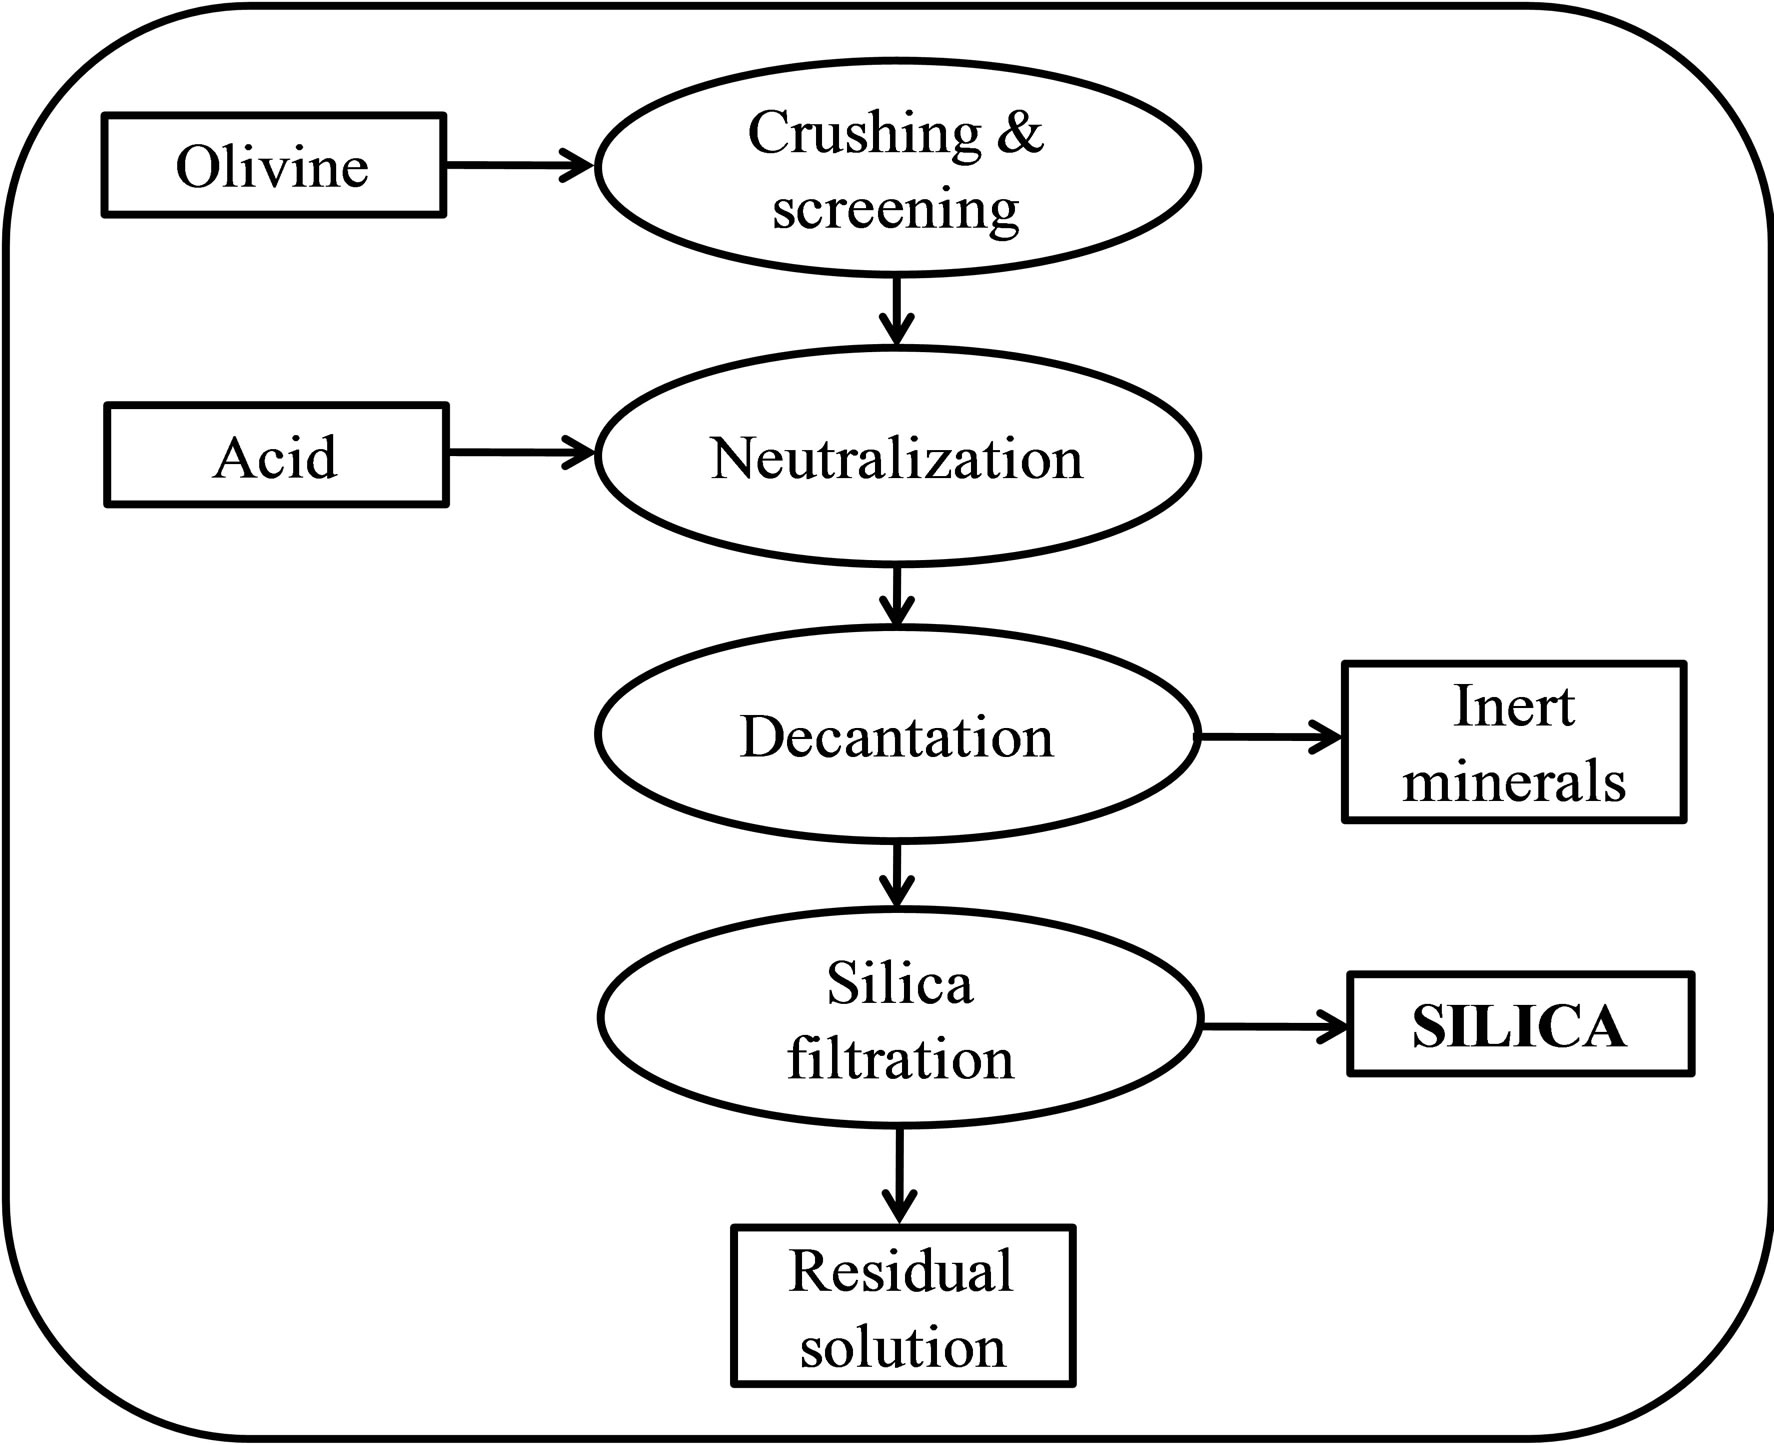 Synthesis of a green nano silica material using beneficiated waste flow chart of the olivine process nvjuhfo Gallery